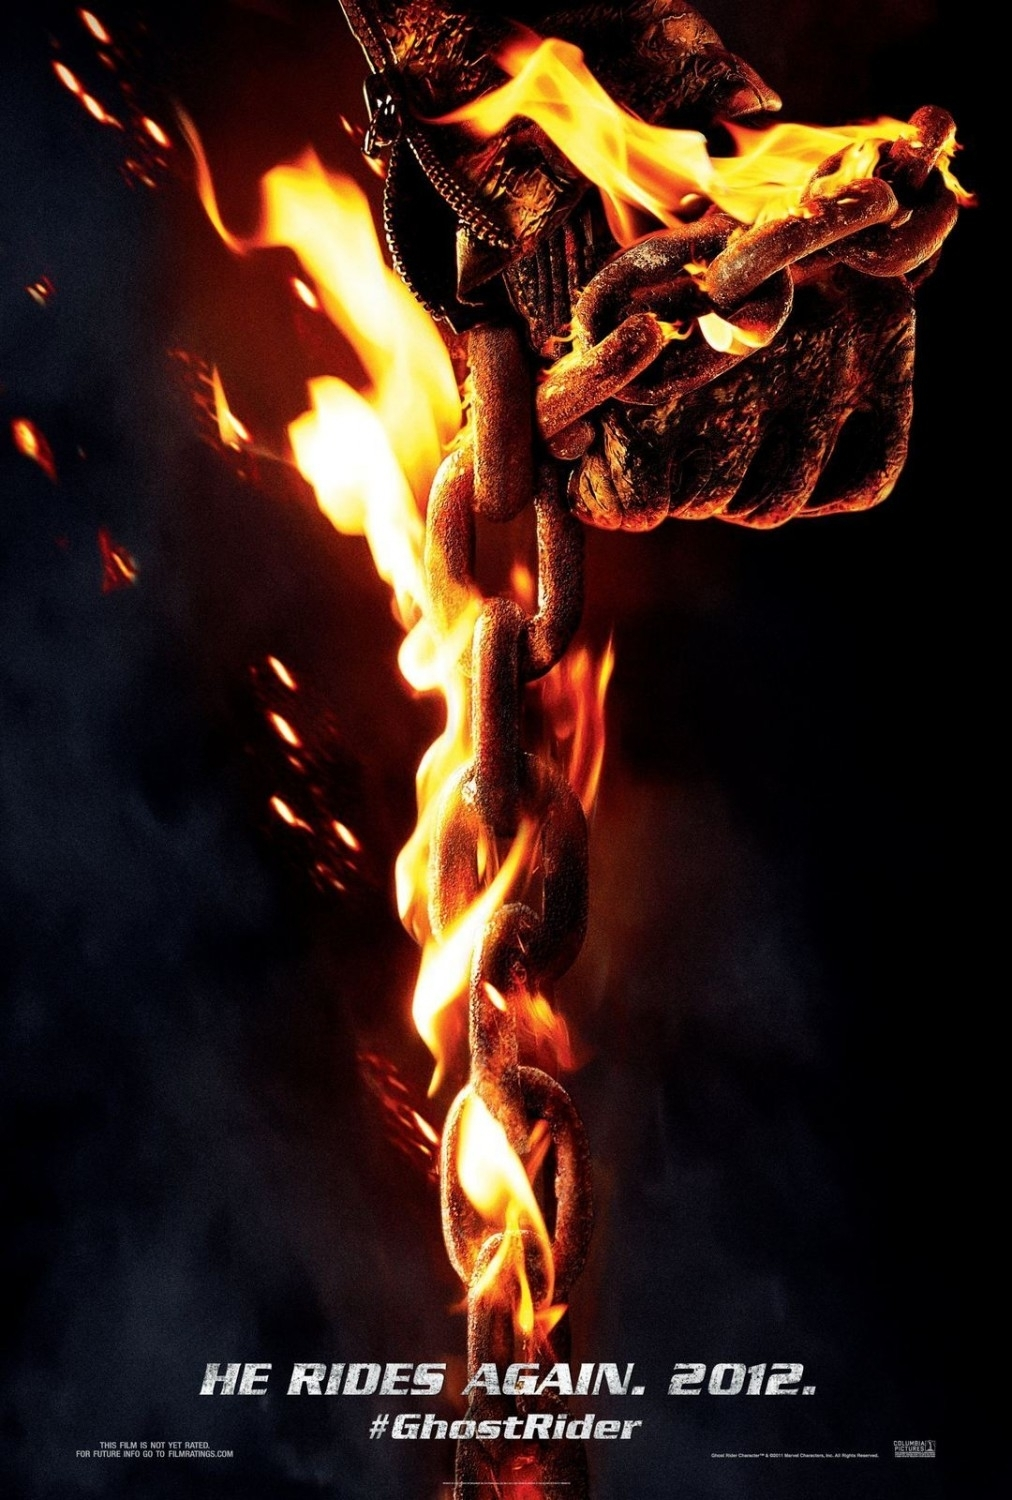 ghost rider 3 news from nicolas cage; says it's possible 'but it won